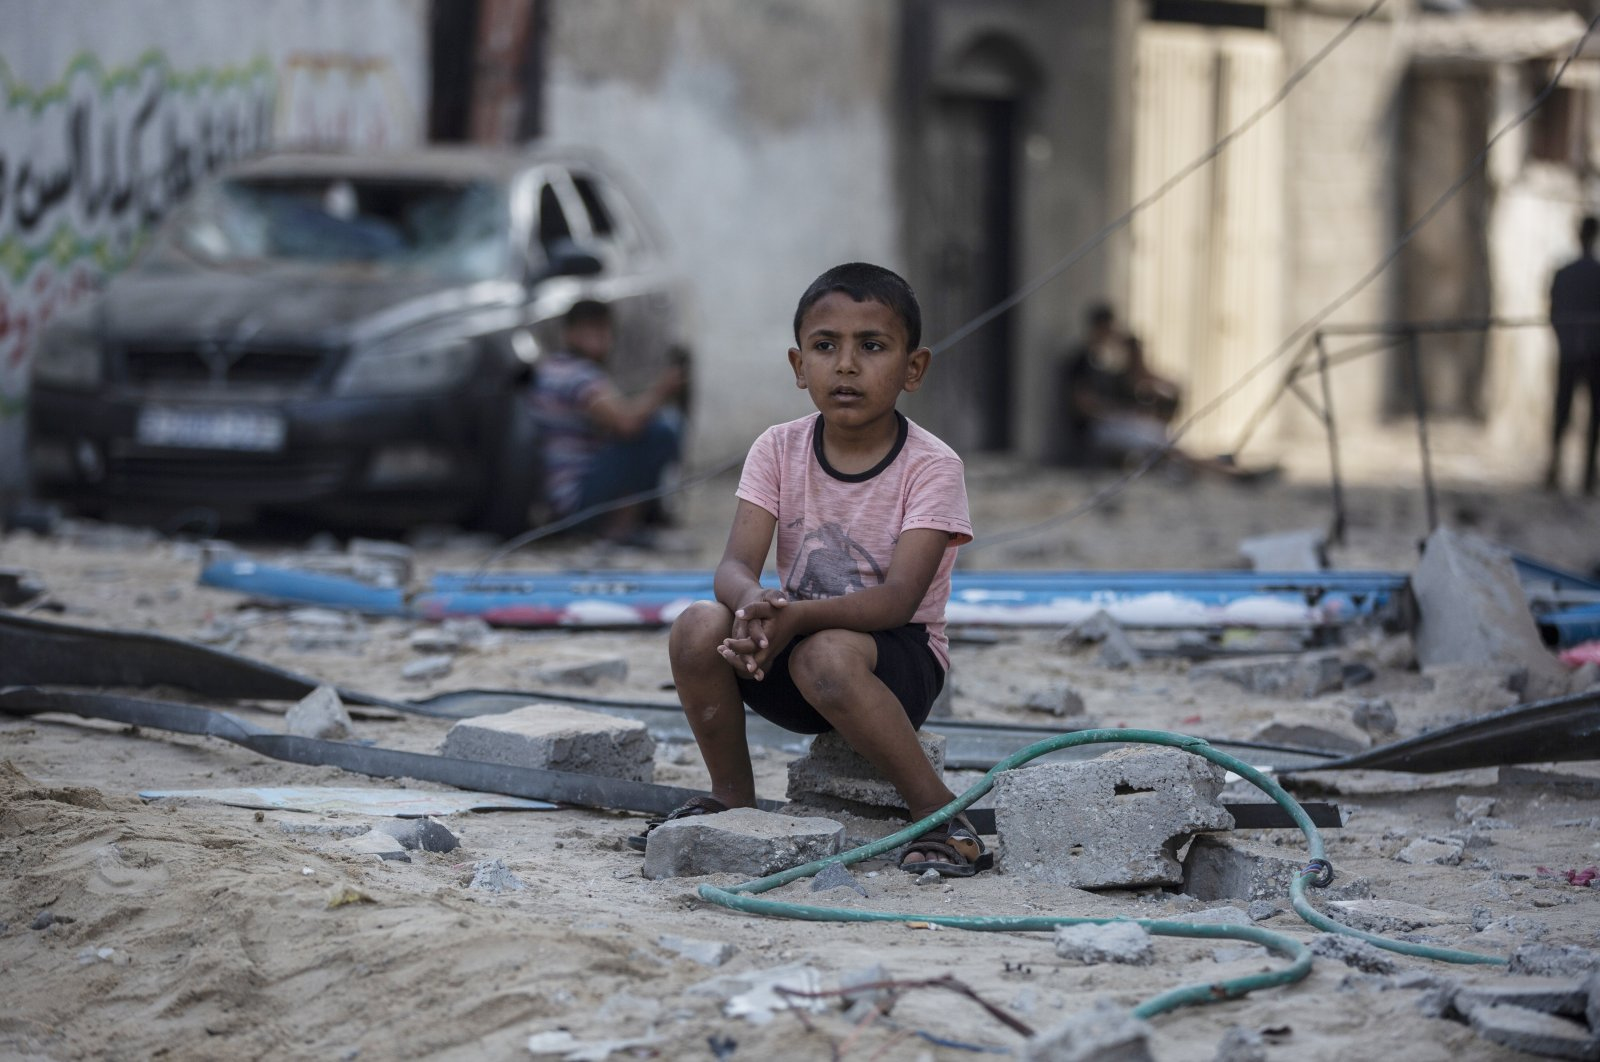 A Palestinian boy sits looking at others inspecting the damage of their shops following Israeli airstrikes on Jabaliya refugee camp, northern Gaza Strip, May 20, 2021. (AP Photo)